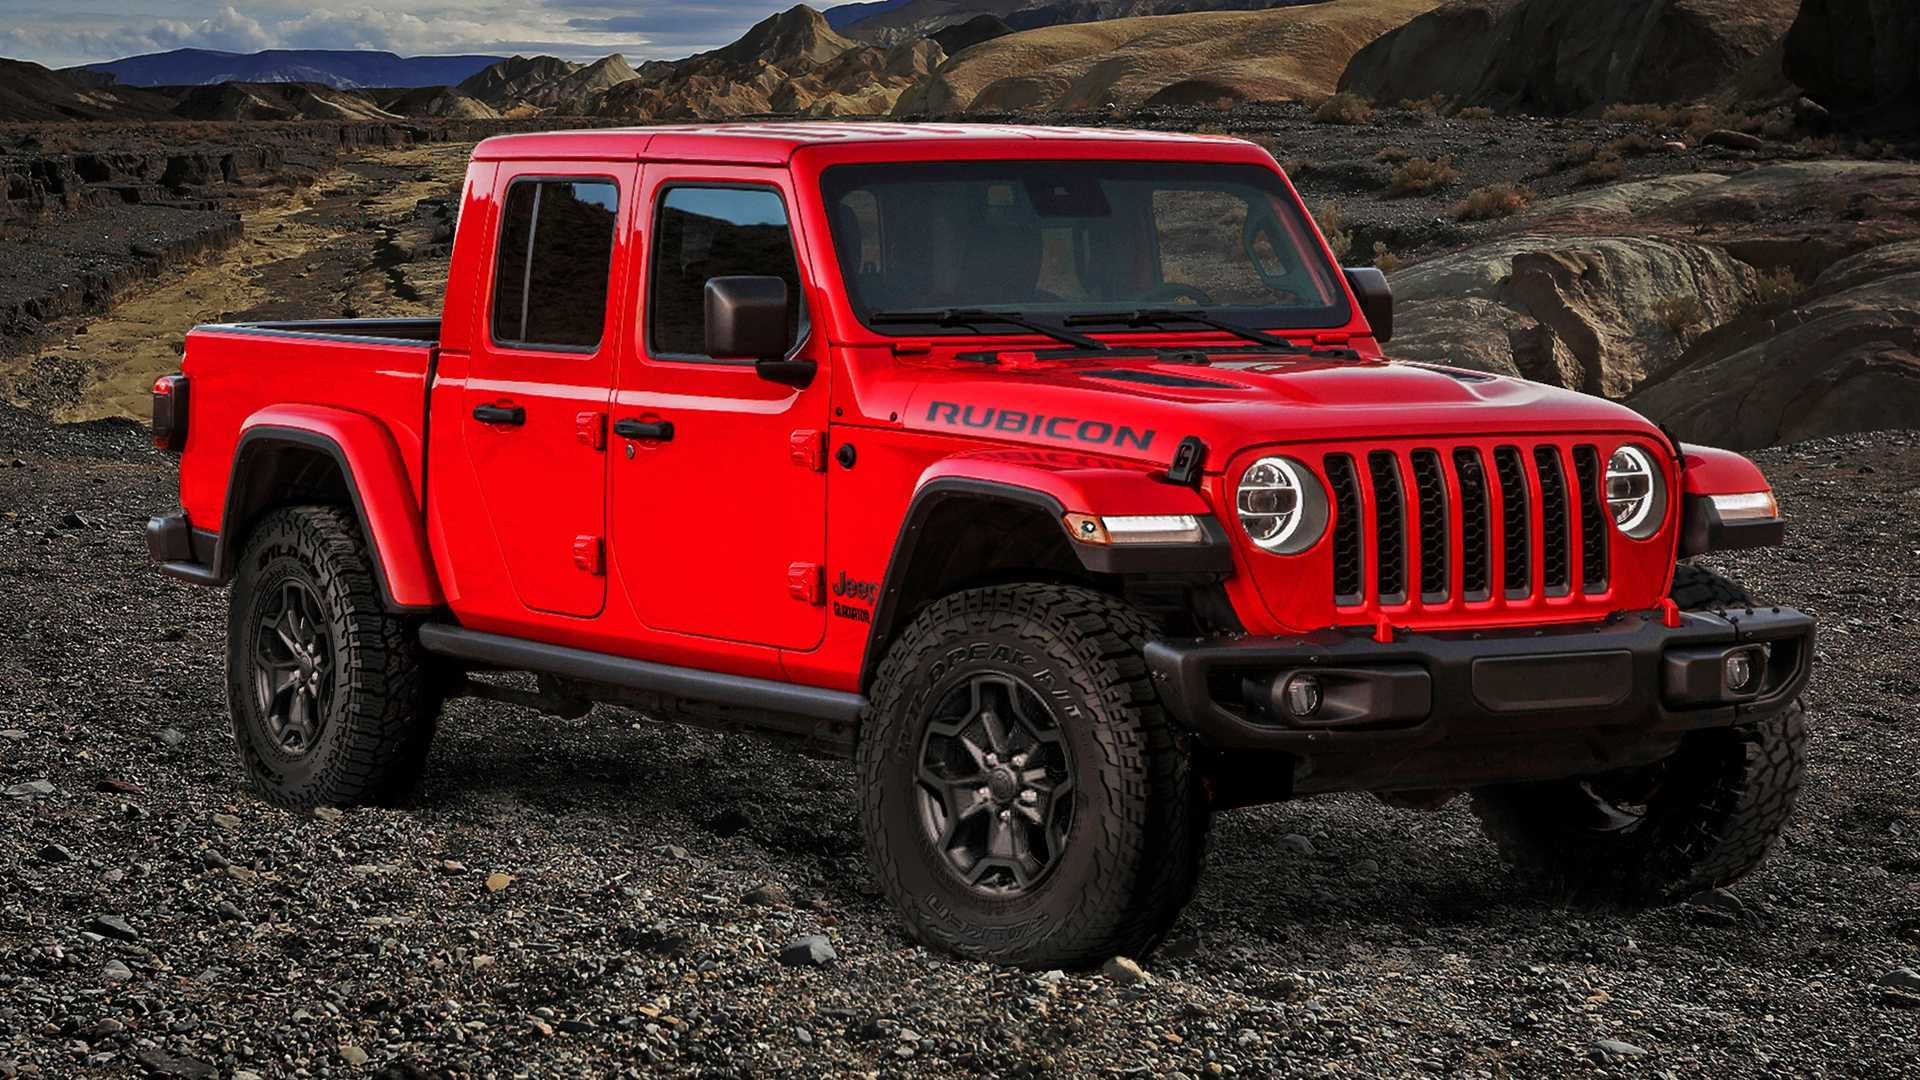 60k Jeep Gladiator Launch Edition Sells Out In One Day